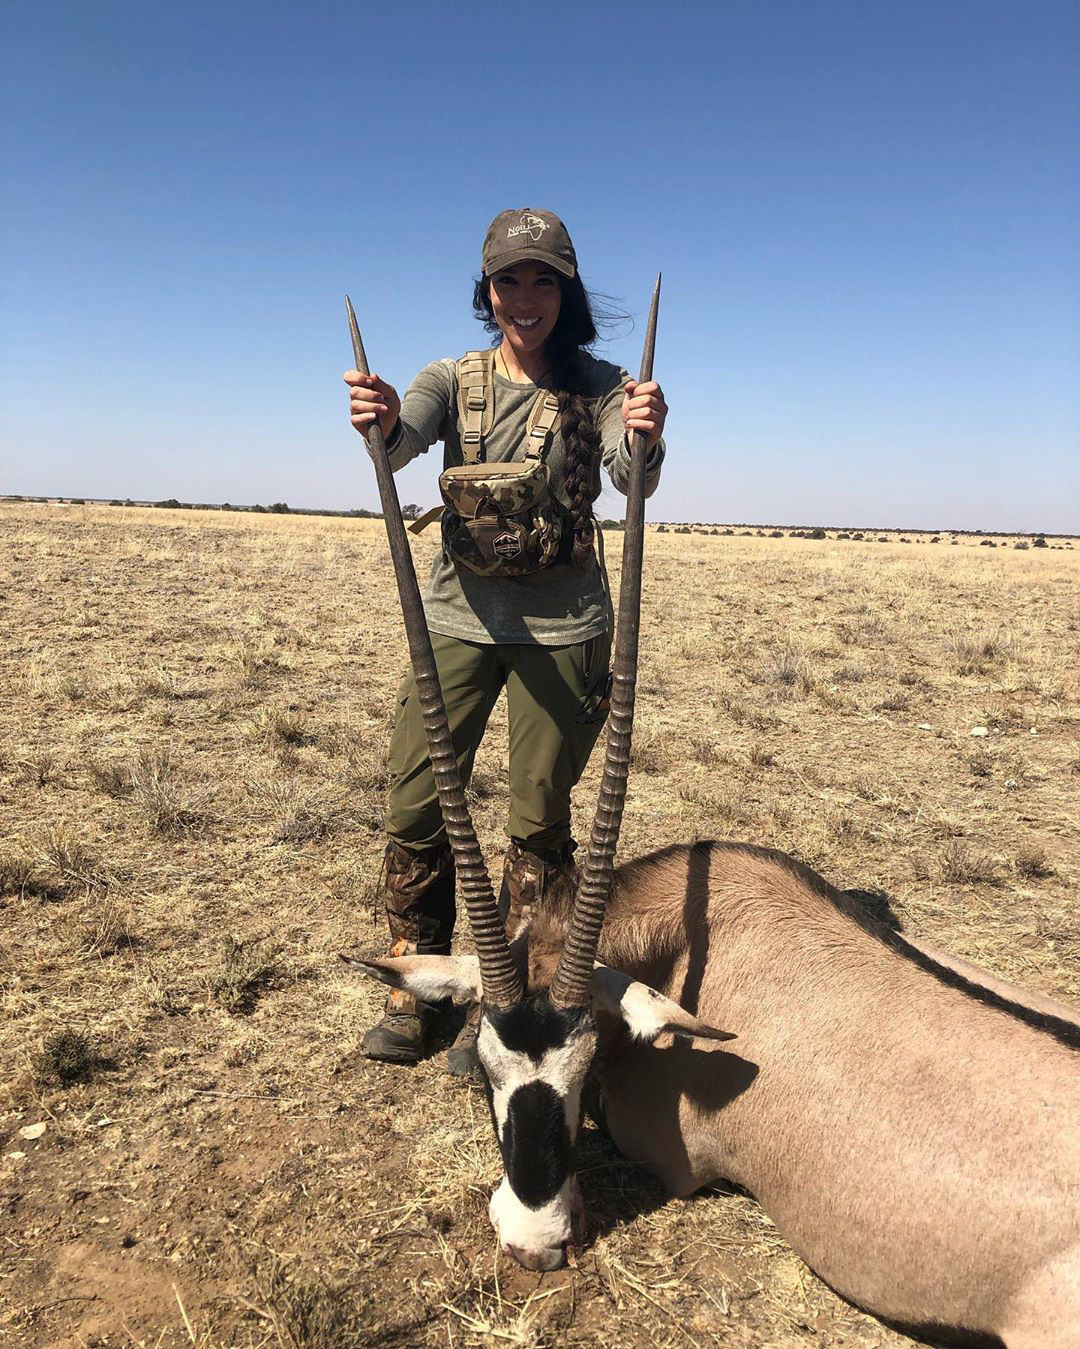 Kate recently killed a gemsbock in South Africa. IDAHO, USA: THIS NURSE receives thousands of death threats online and has even had sickos threaten to RAPE AND MURDER her baby daughter but continues to defy the trolls to show that hunting isn't just for men by sharing her kills with her 27K Instagram followers. Registered nurse, Kate Small (29) from Boise, Idaho, USA, was introduced to hunting by her stepdad 10 years ago and instantly fell in love with it. Kate loves everything about hunting, from the adventure and strategic planning leading up to the kill which tests her strength and endurance and gives her unforgettable memories, to gutting, preserving and butchering the animal afterwards. Knowing where her food has come from is an important thing for Kate and she makes sure that she salvages as much of the animal that she can, using the meat, with the exception of wolf meat because it isn't fit for human consumption, to fill her freezer for her family to live off and uses the hide and head for mounting. Kate never kills an animal just for the fun of hunting, only killing them for conservation or food purposes. Despite this, and hunting in a completely legal and ethical way, she receives thousands of disgusting death threats from people who have threatened to rape and murder her one-year-old daughter, murder her dogs and Kate herself, which she tries her best to laugh off. As a backcountry hunter, Kate can spend days or weeks out in the field to hunt an animal and she's acquired 27K followers on her Instagram, @kate_small_outdoors. She hopes to be able to encourage other women to the sport and prove that it's not just a man's game. The largest animal Kate has ever hunted was a black bear which was over 6ft long and weighed more than 350lb but the most difficult animal to hunt is the wolf due to its heightened senses, speed and distance they can travel in a day.mediadrumworld.com / @kate_small_outdoors, Image: 470141418, License: Rights-managed, Restrictions: FBMD23000988030000305f000007810000829a000088170200ce7d02007144030023b9030022190400763f0500, Model Release: no, Credit line: Profimedia, Media Drum World